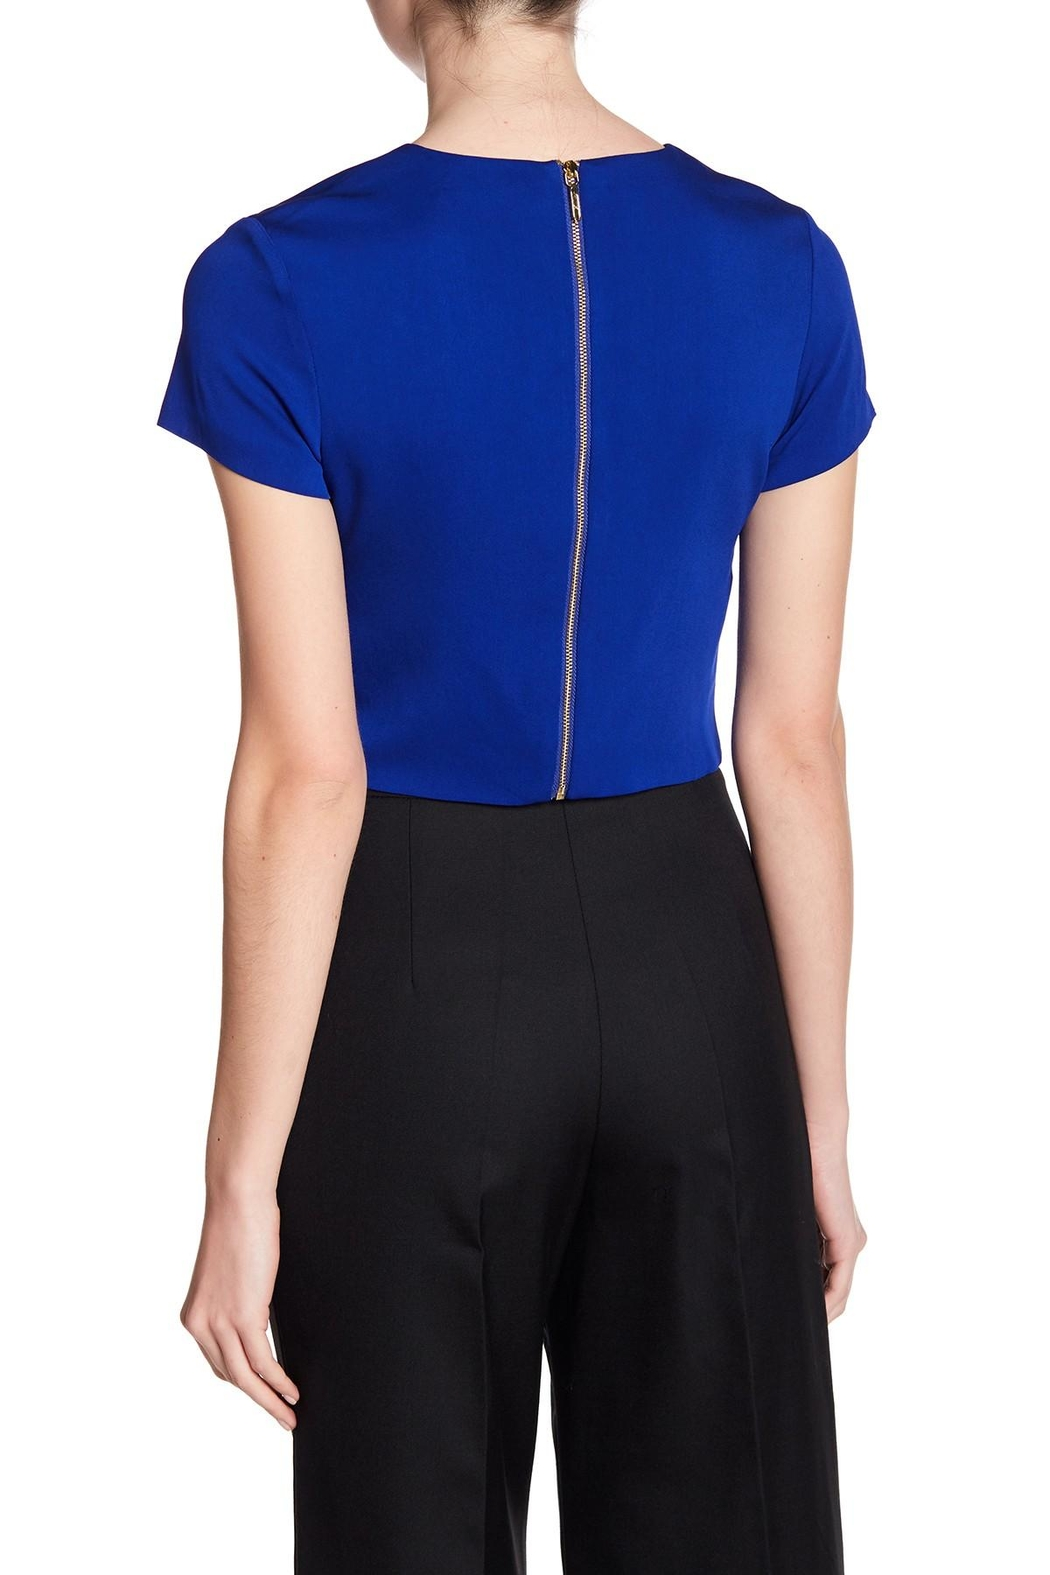 Nicole Miller Crepe-Woven Crop Top - Side Cropped Image